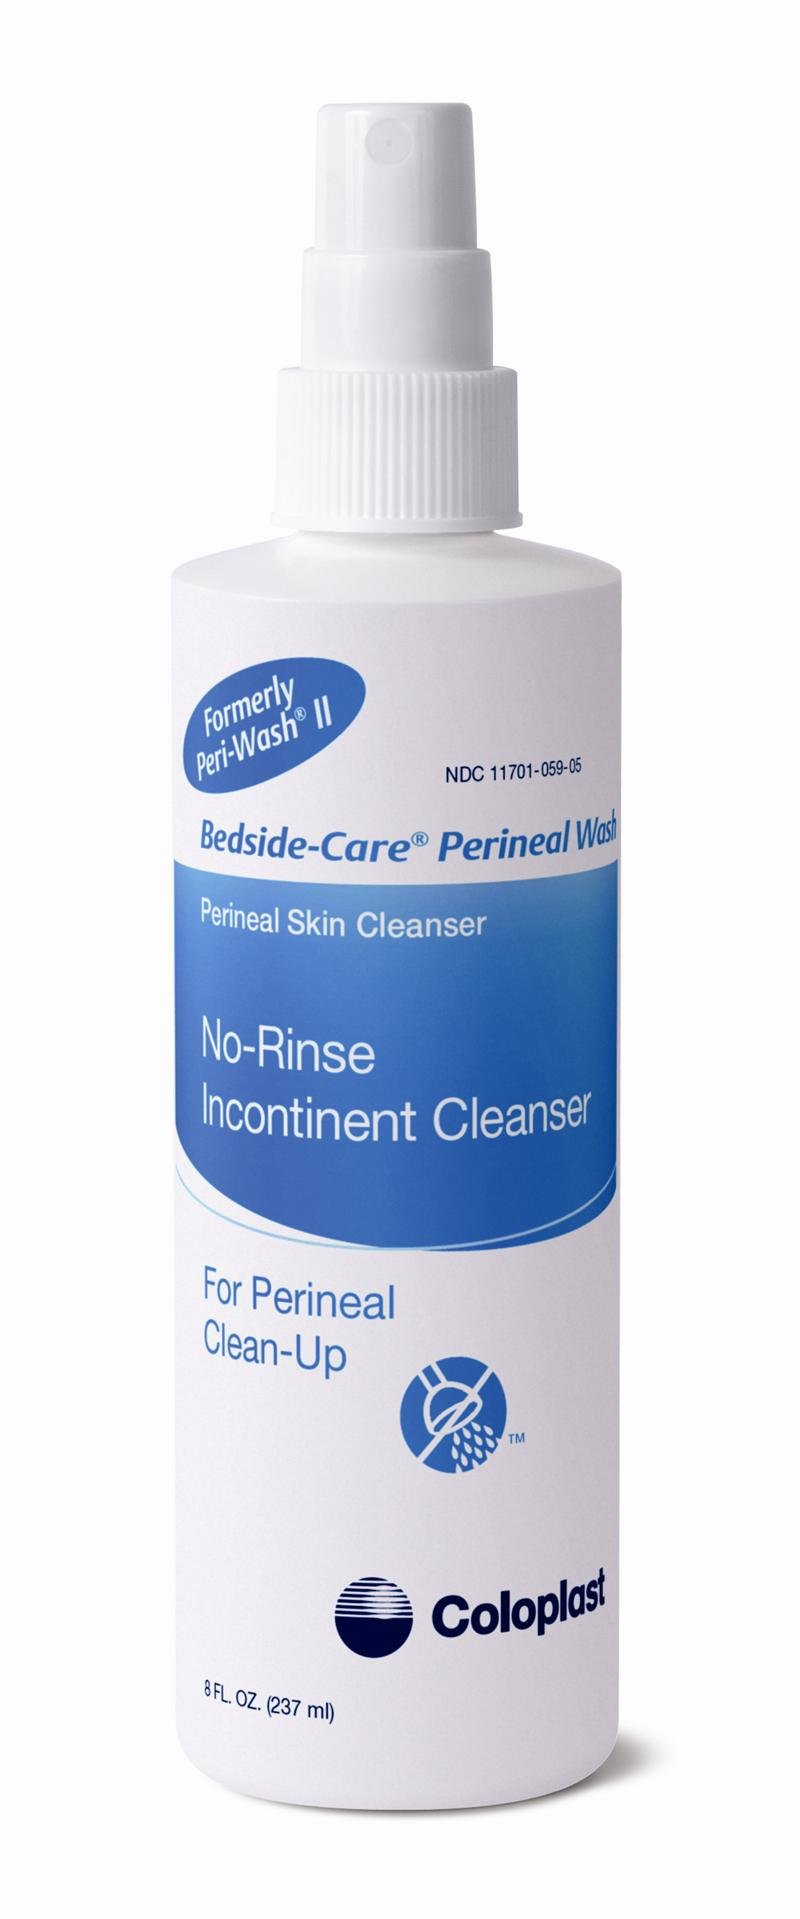 Coloplast Bedside-Care Perineal Wash No-Rinse Incontinent Cleanser 8oz 1453